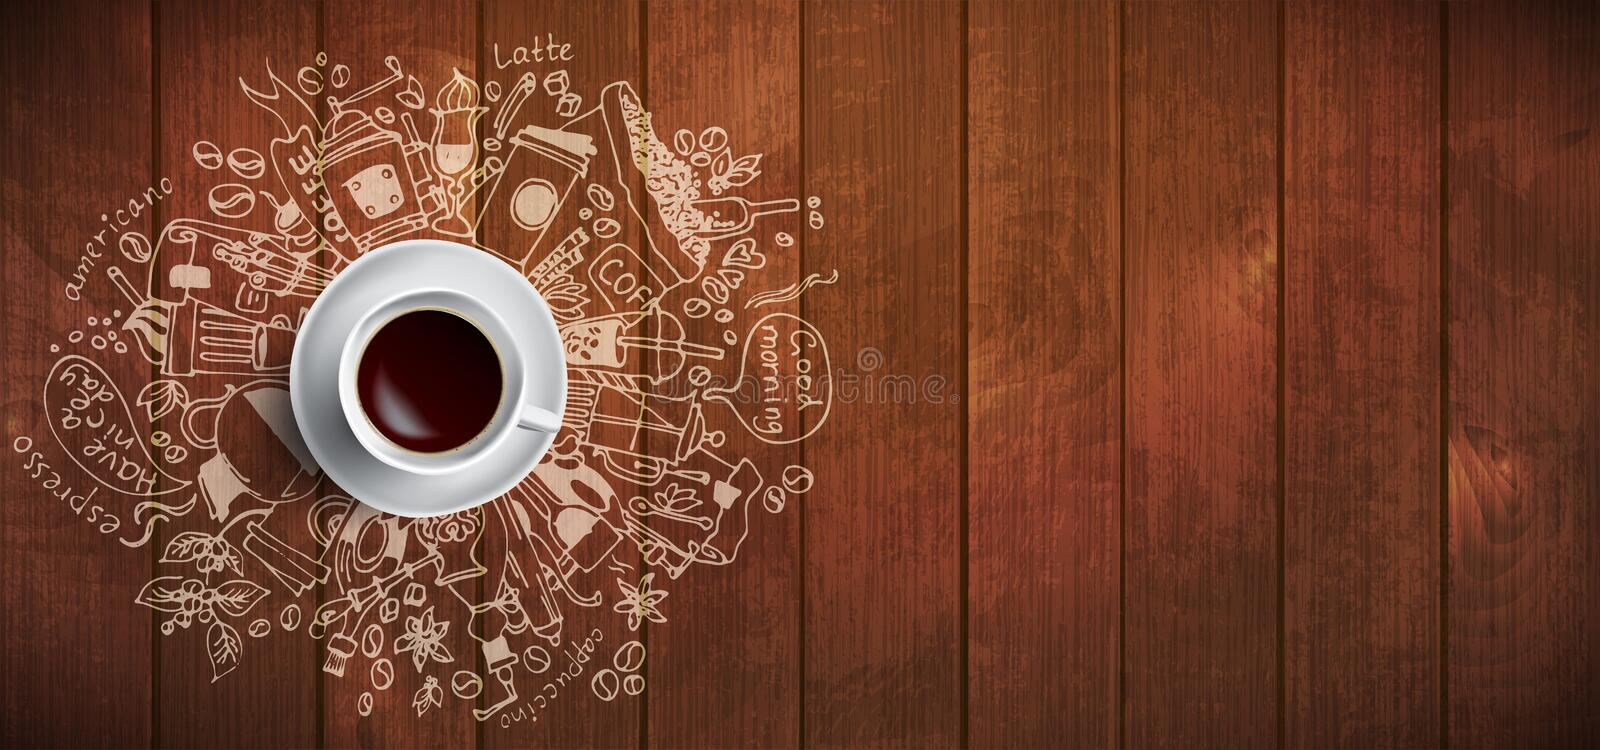 Coffee concept on wooden background - white coffee cup, top view with doodle illustration about coffee, beans, morning royalty free illustration